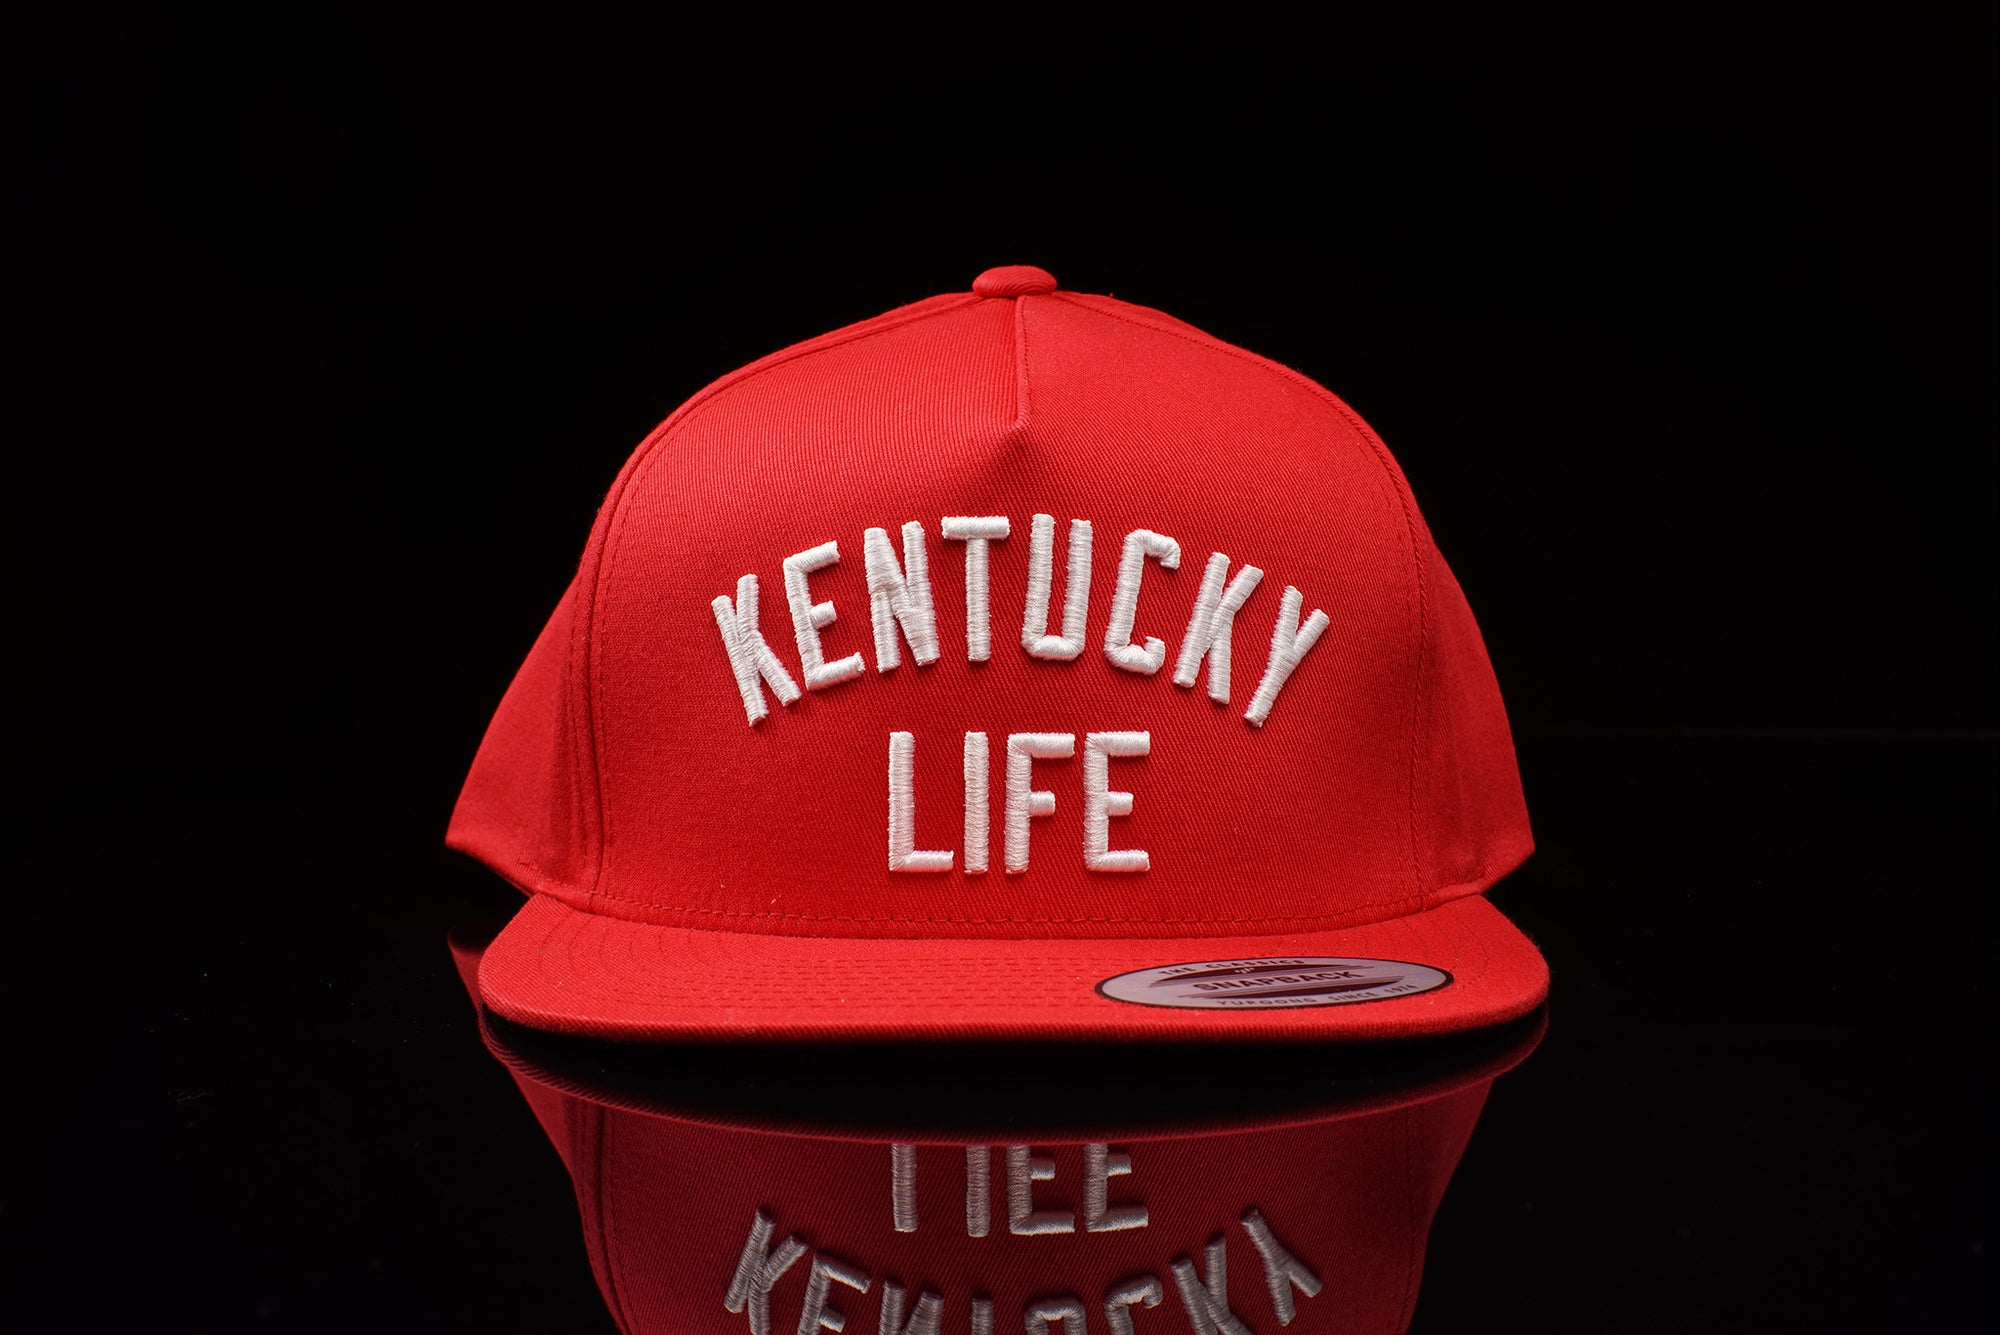 Diamond Supply CO x Oneness Kentucky Life 'Rivalry' Snapback